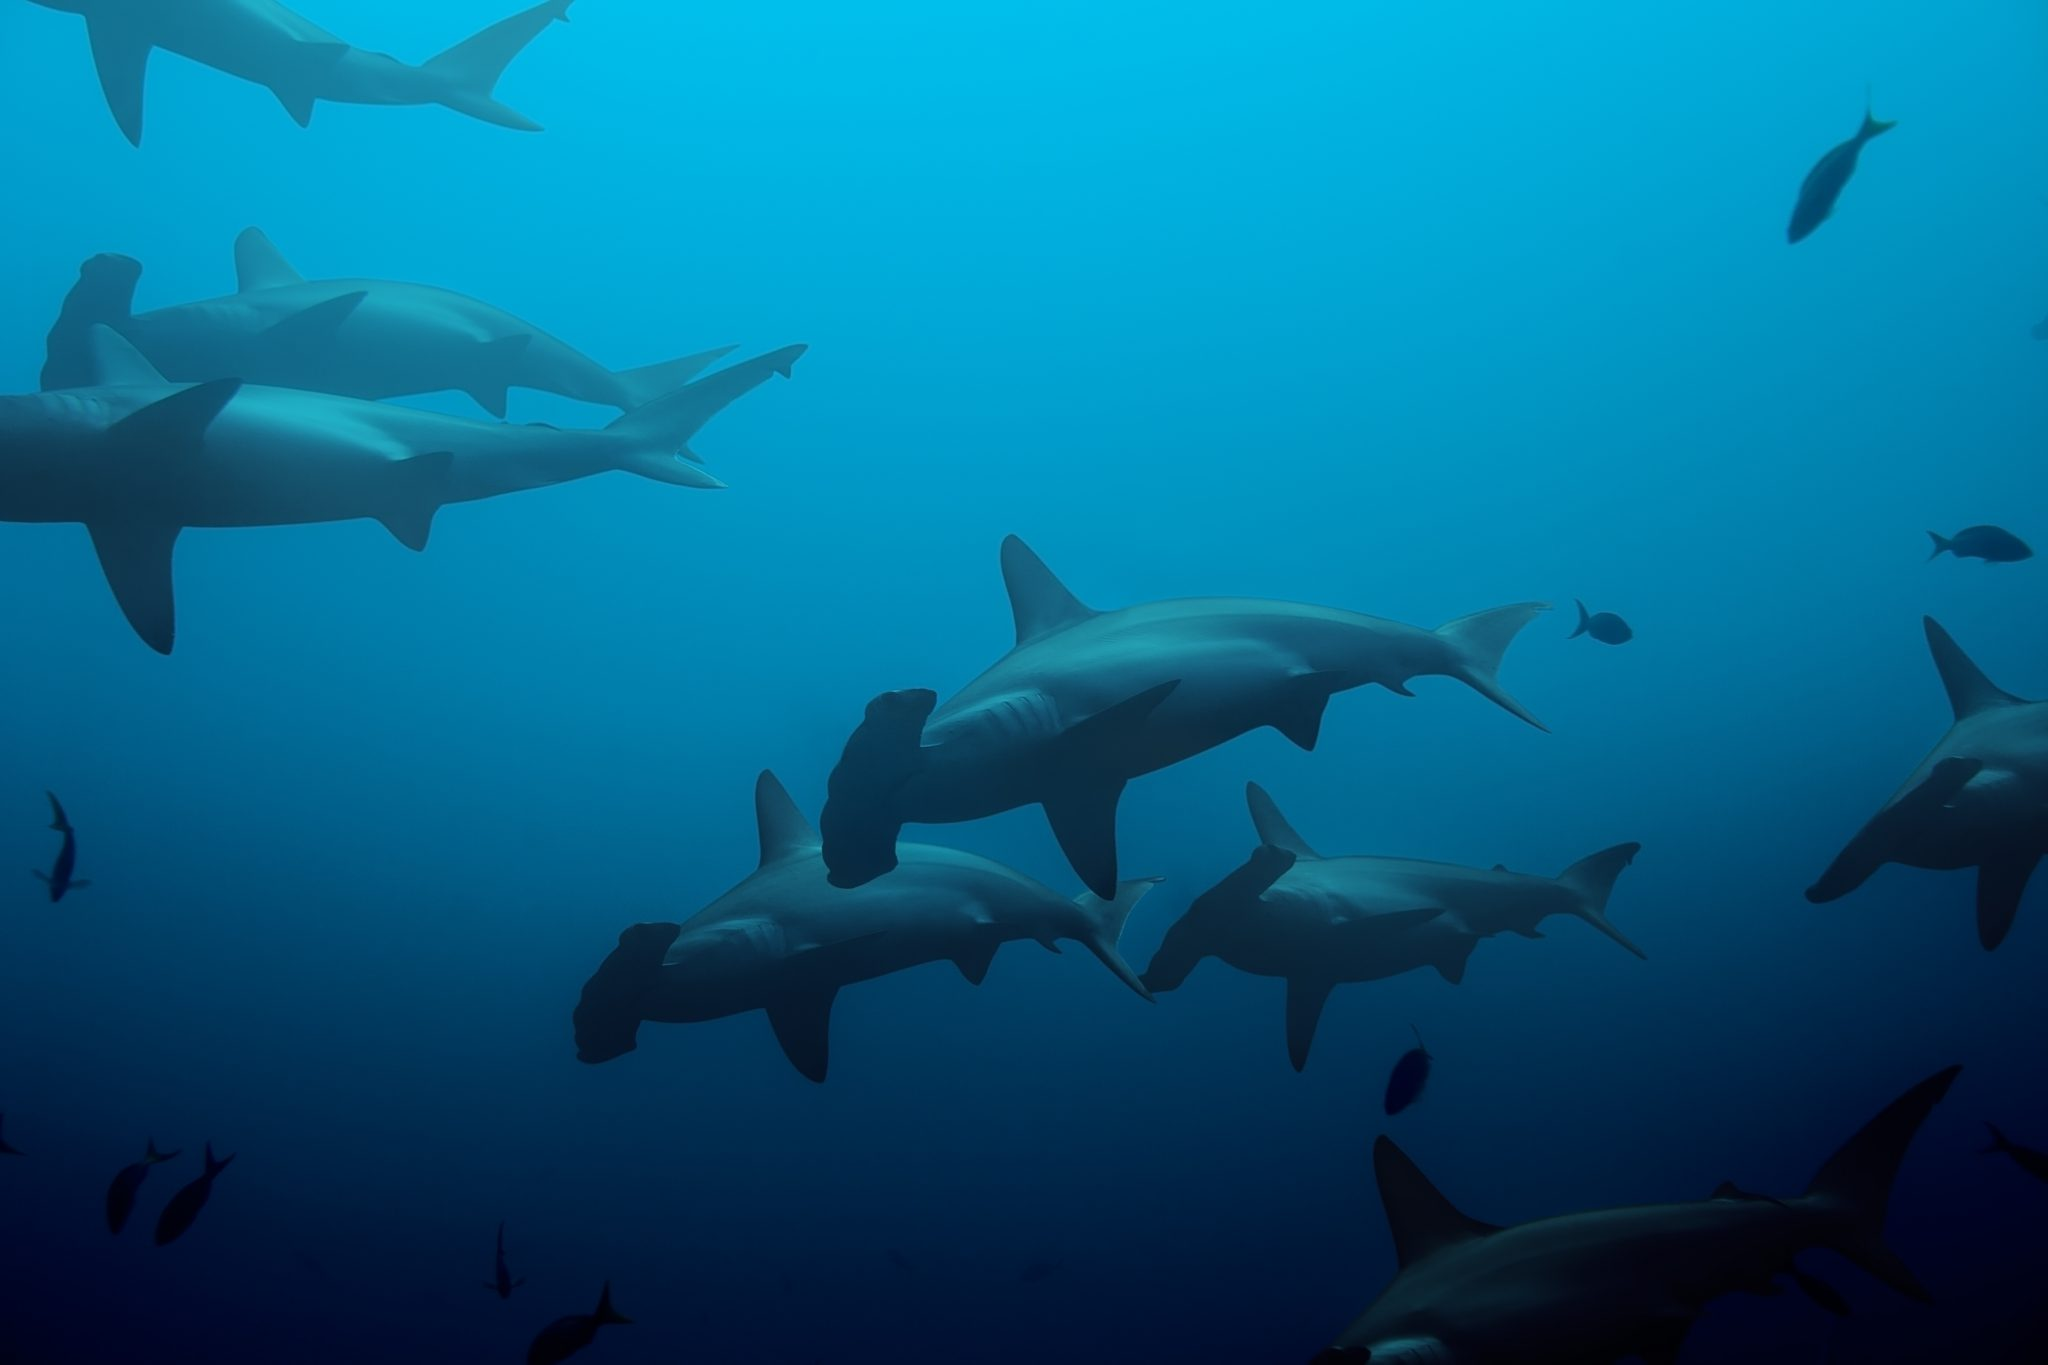 School of hammerhead sharks-blue- ocean